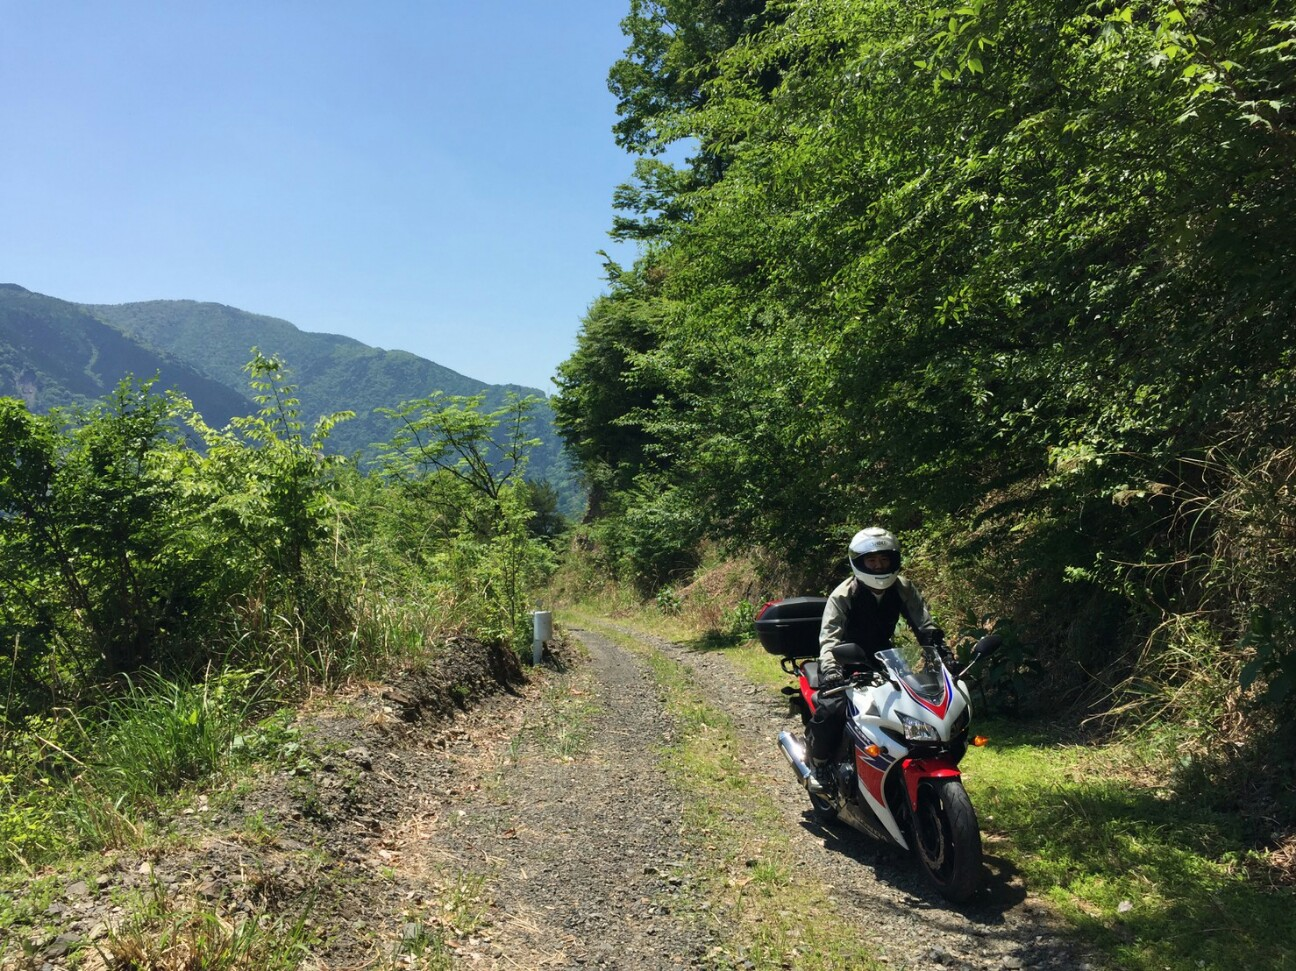 f:id:bike-camera:20170615075315j:image